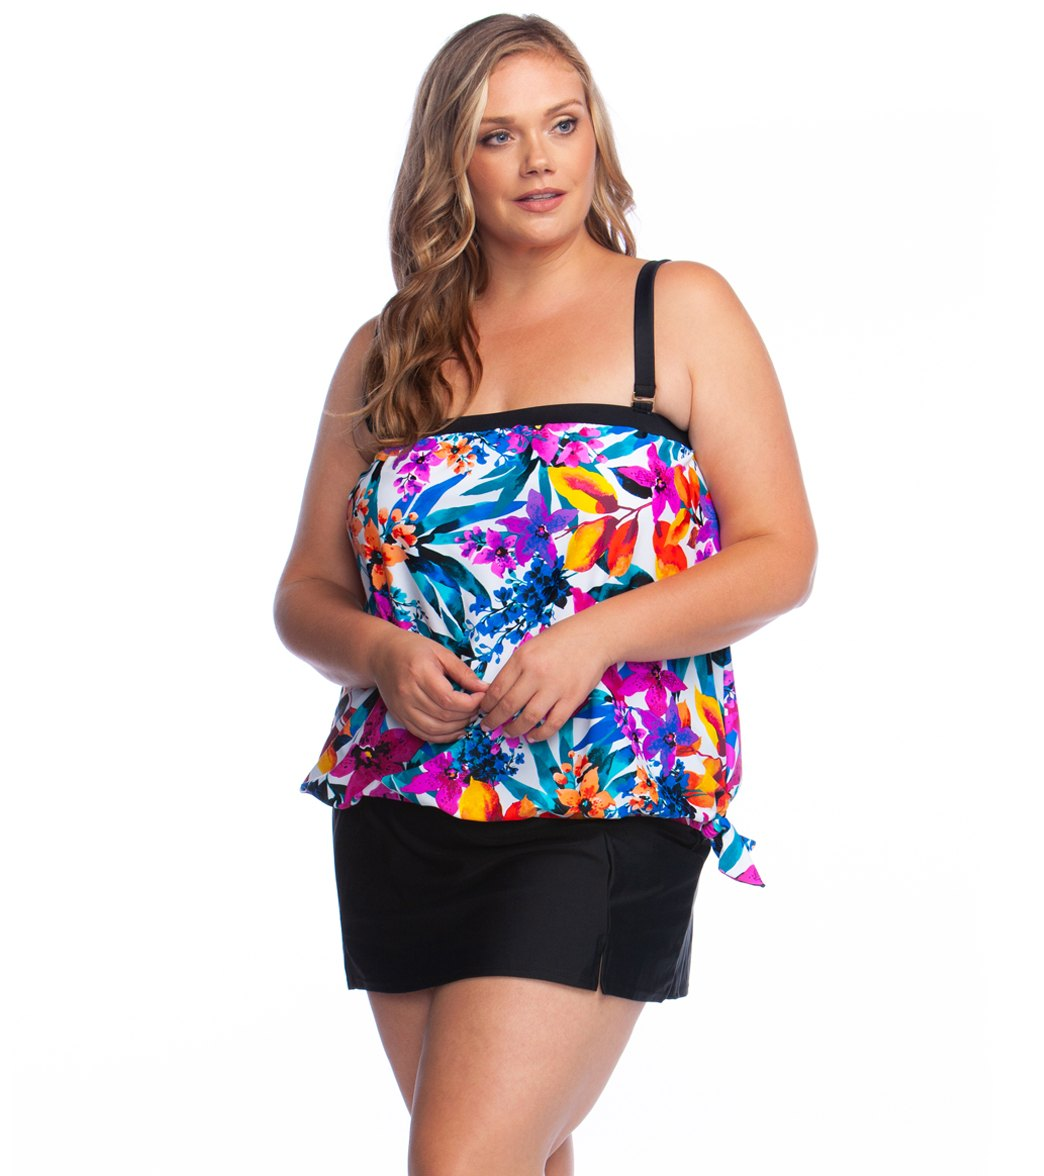 e0d017bea3 ... Maxine Plus Size Key West Bandeau Blouson Tankini Top. Share